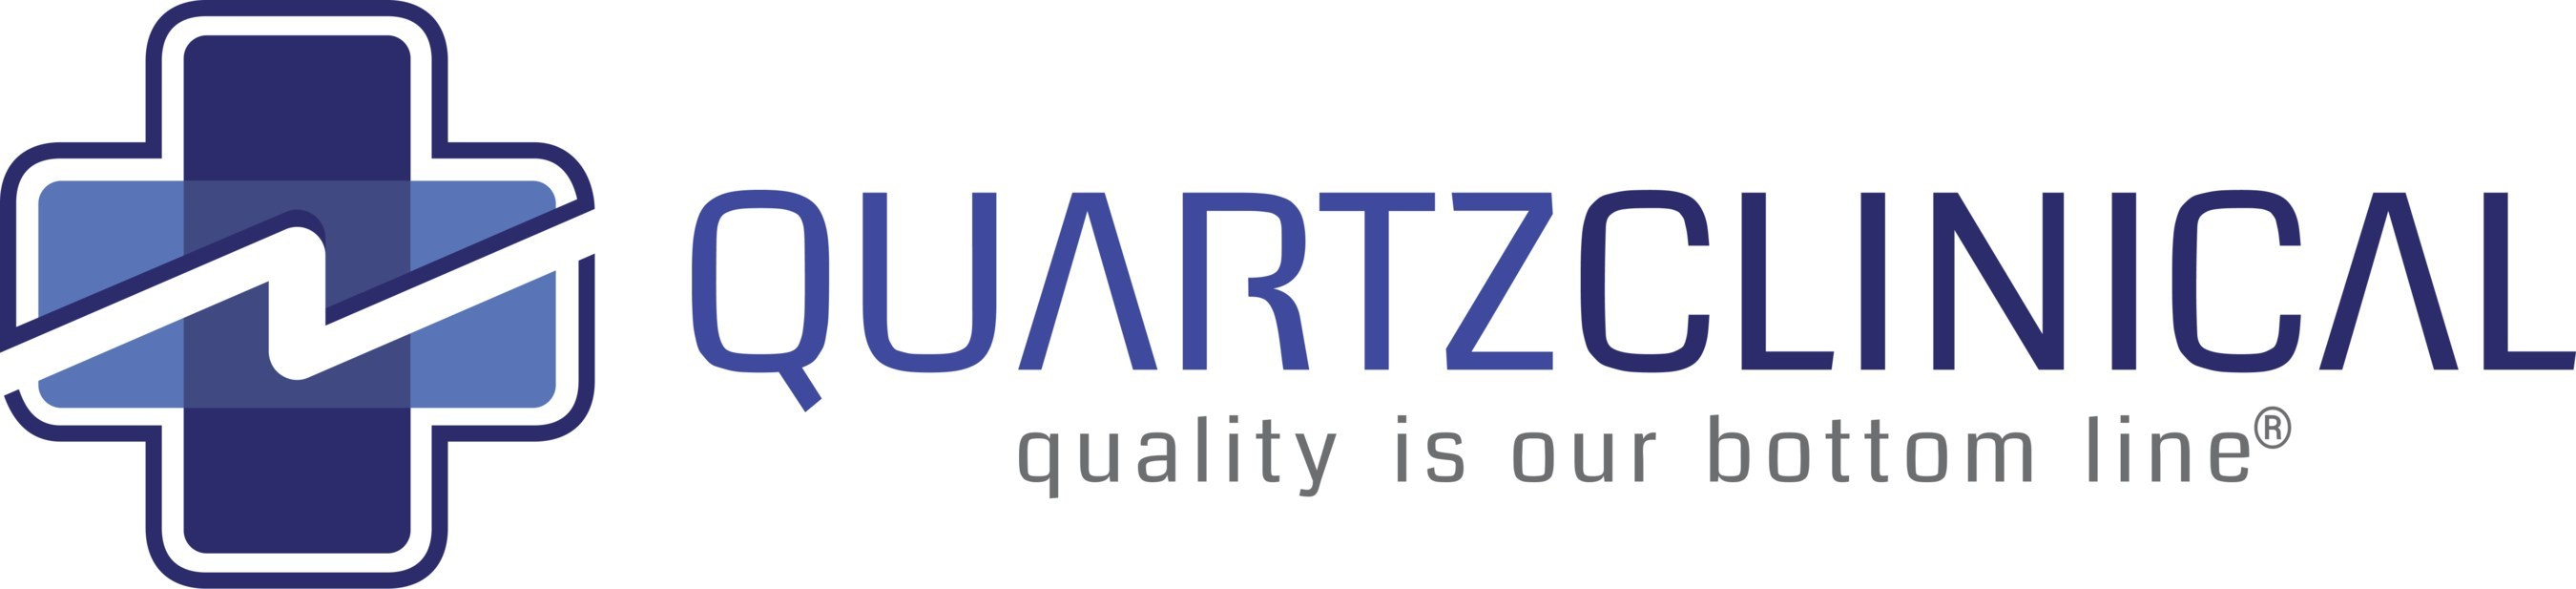 Quartz Clinical, an advanced healthcare data analytics platform, connects all of a hospital's enterprise data and benchmarks its entire enterprise down to the individual procedure and provider. Using Lean Six Sigma principles and machine learning to uncover quality improvement potential, lost revenues and operational inefficiencies, Quartz empowers leadership teams and medical staff to achieve better health and better care at a lower cost. Learn more at www.QuartzClinical.com.